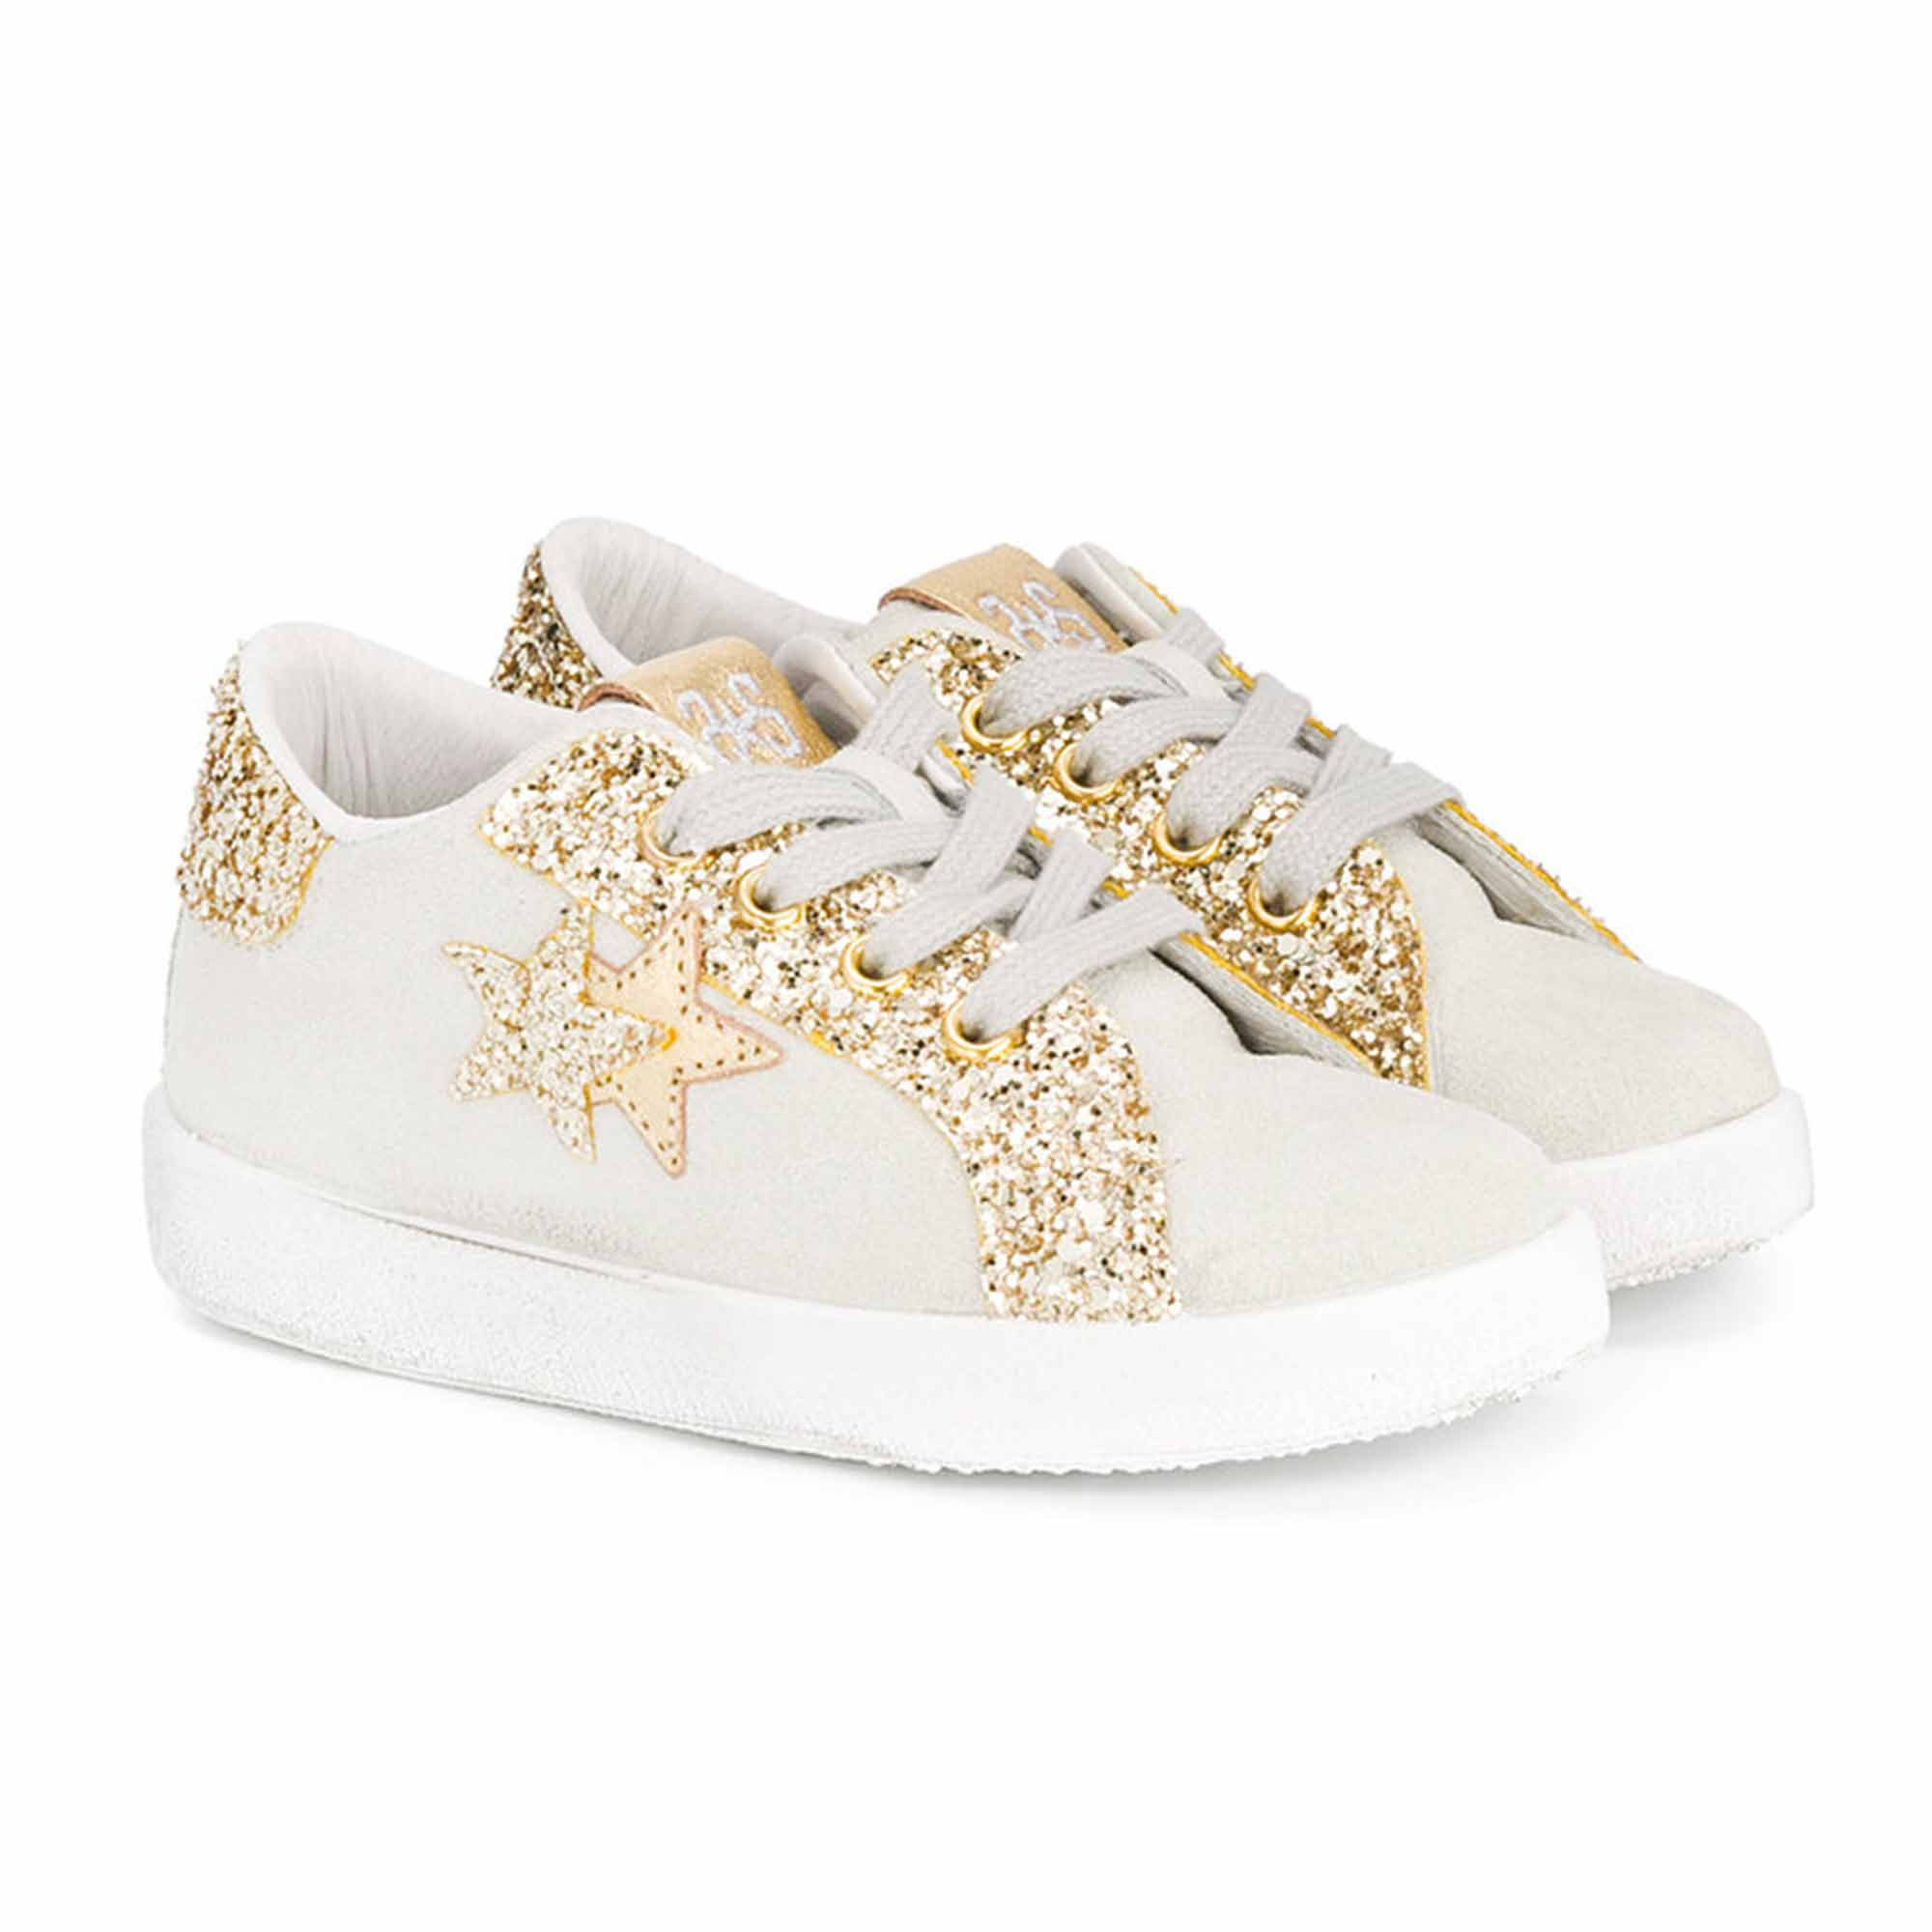 new product d6a27 acddd Sneaker Low Bianca Oro Bambina